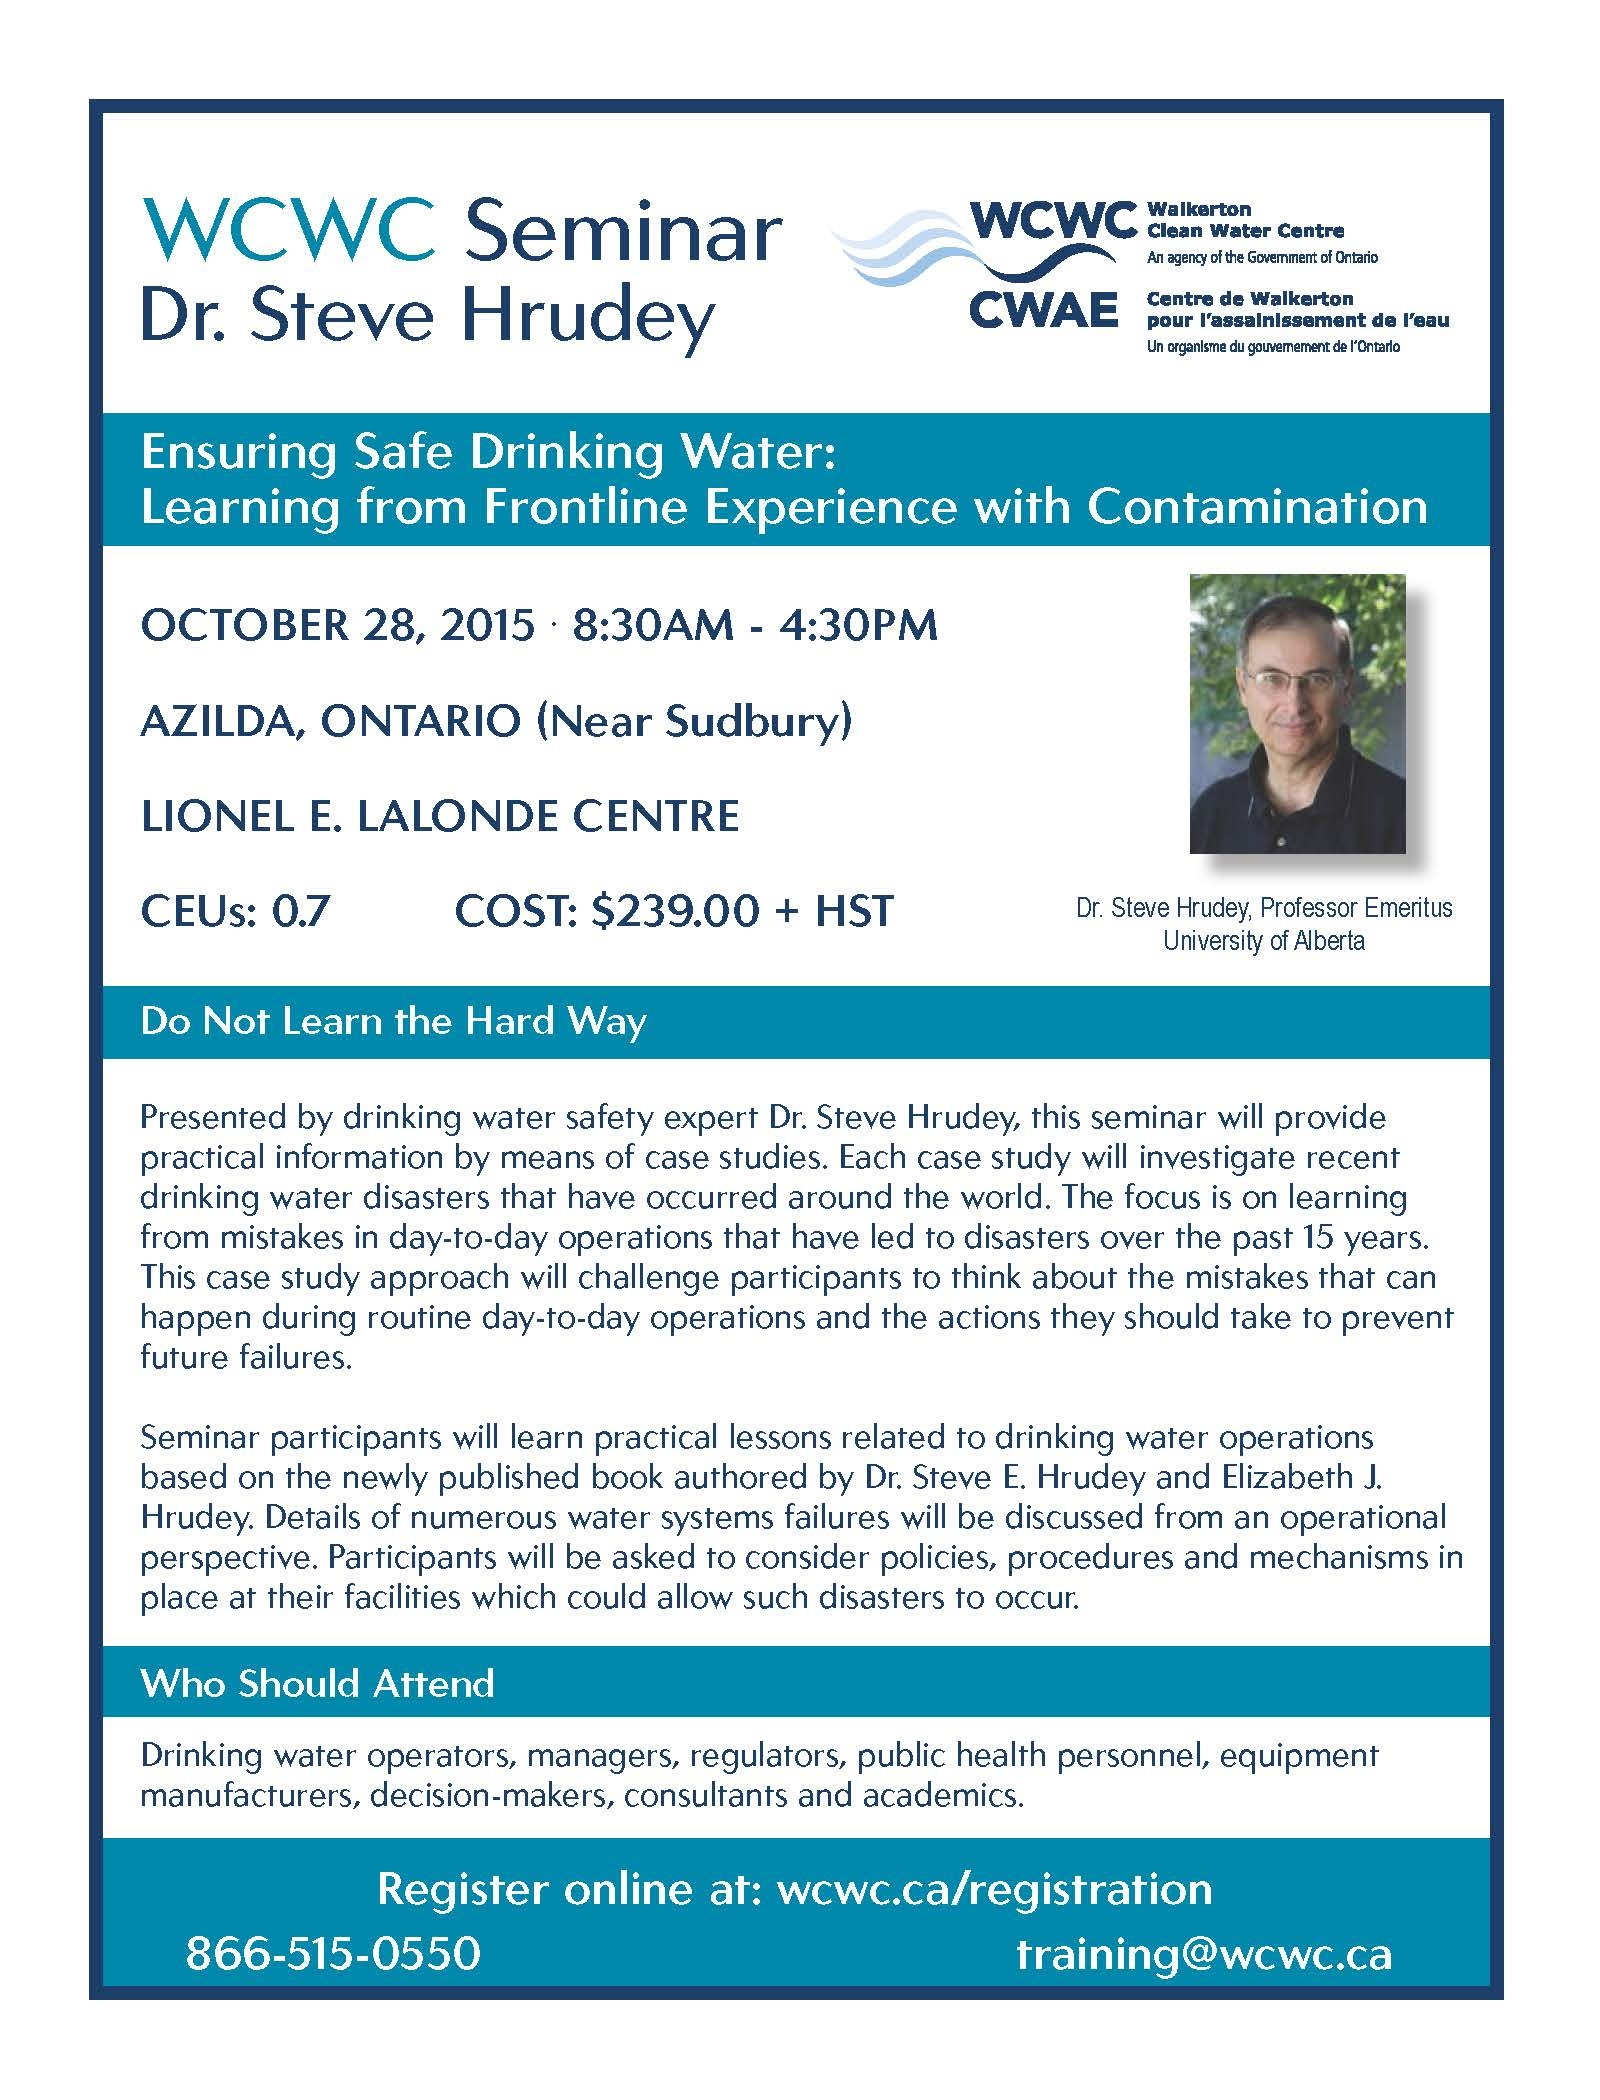 Register now for Dr Steve Hrudey Seminar!